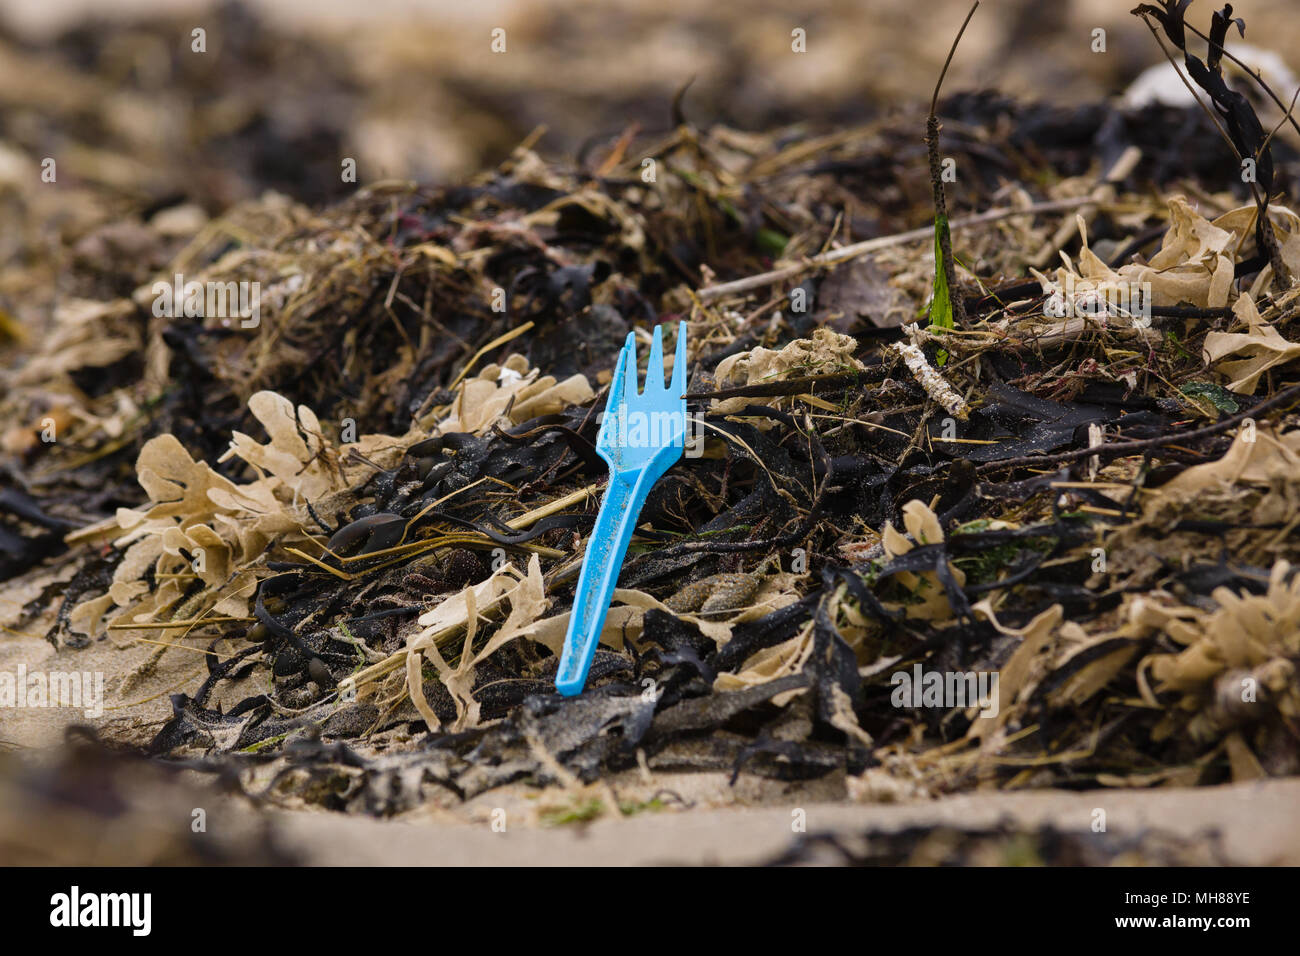 Plastic takeaway fork amongst seaweed washed up on Harlech beach in West Wales UK an example of the many pieces of plastic pollution in the sea - Stock Image